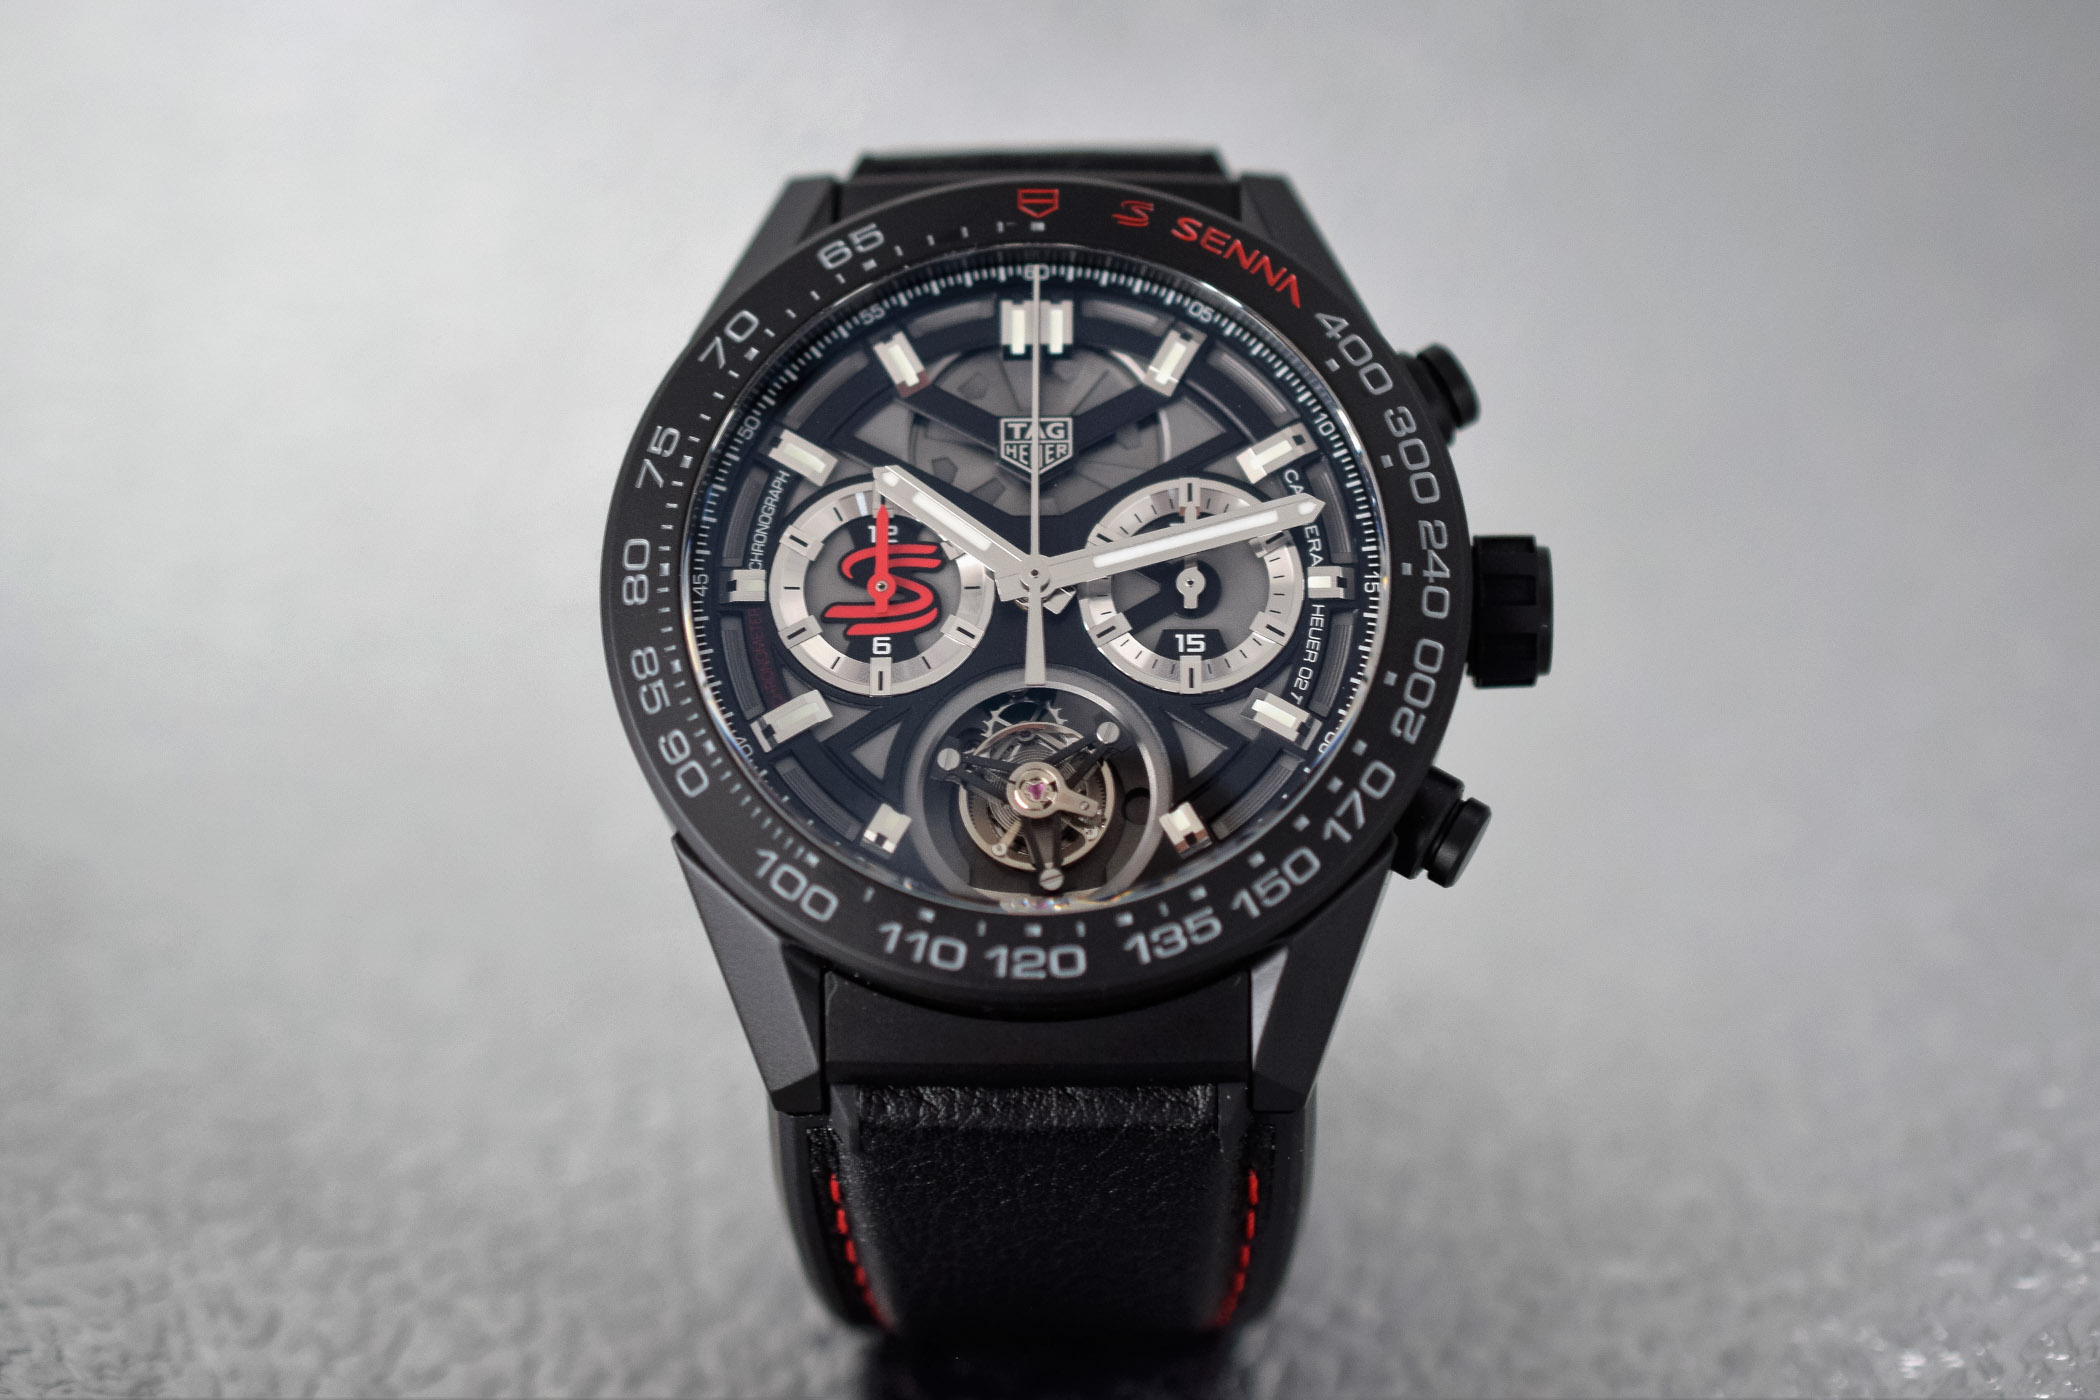 hands on with the 2018 tag heuer carrera senna editions heuer 02 and heuer 02t specs price. Black Bedroom Furniture Sets. Home Design Ideas